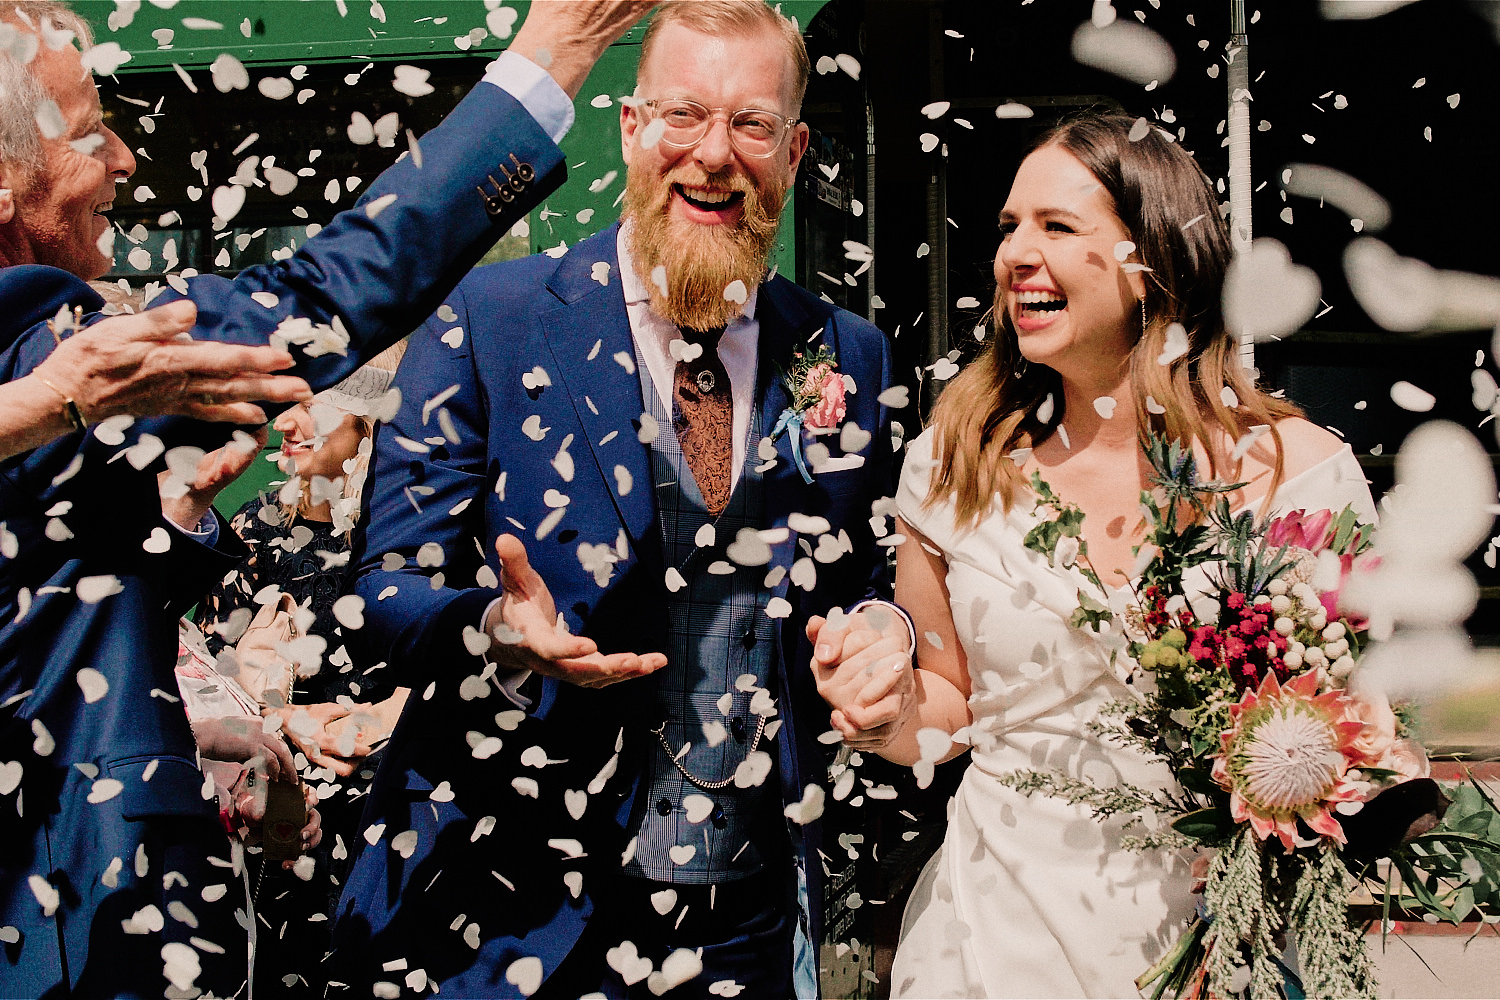 Dublin wedding couple in a whirlwind of confetti